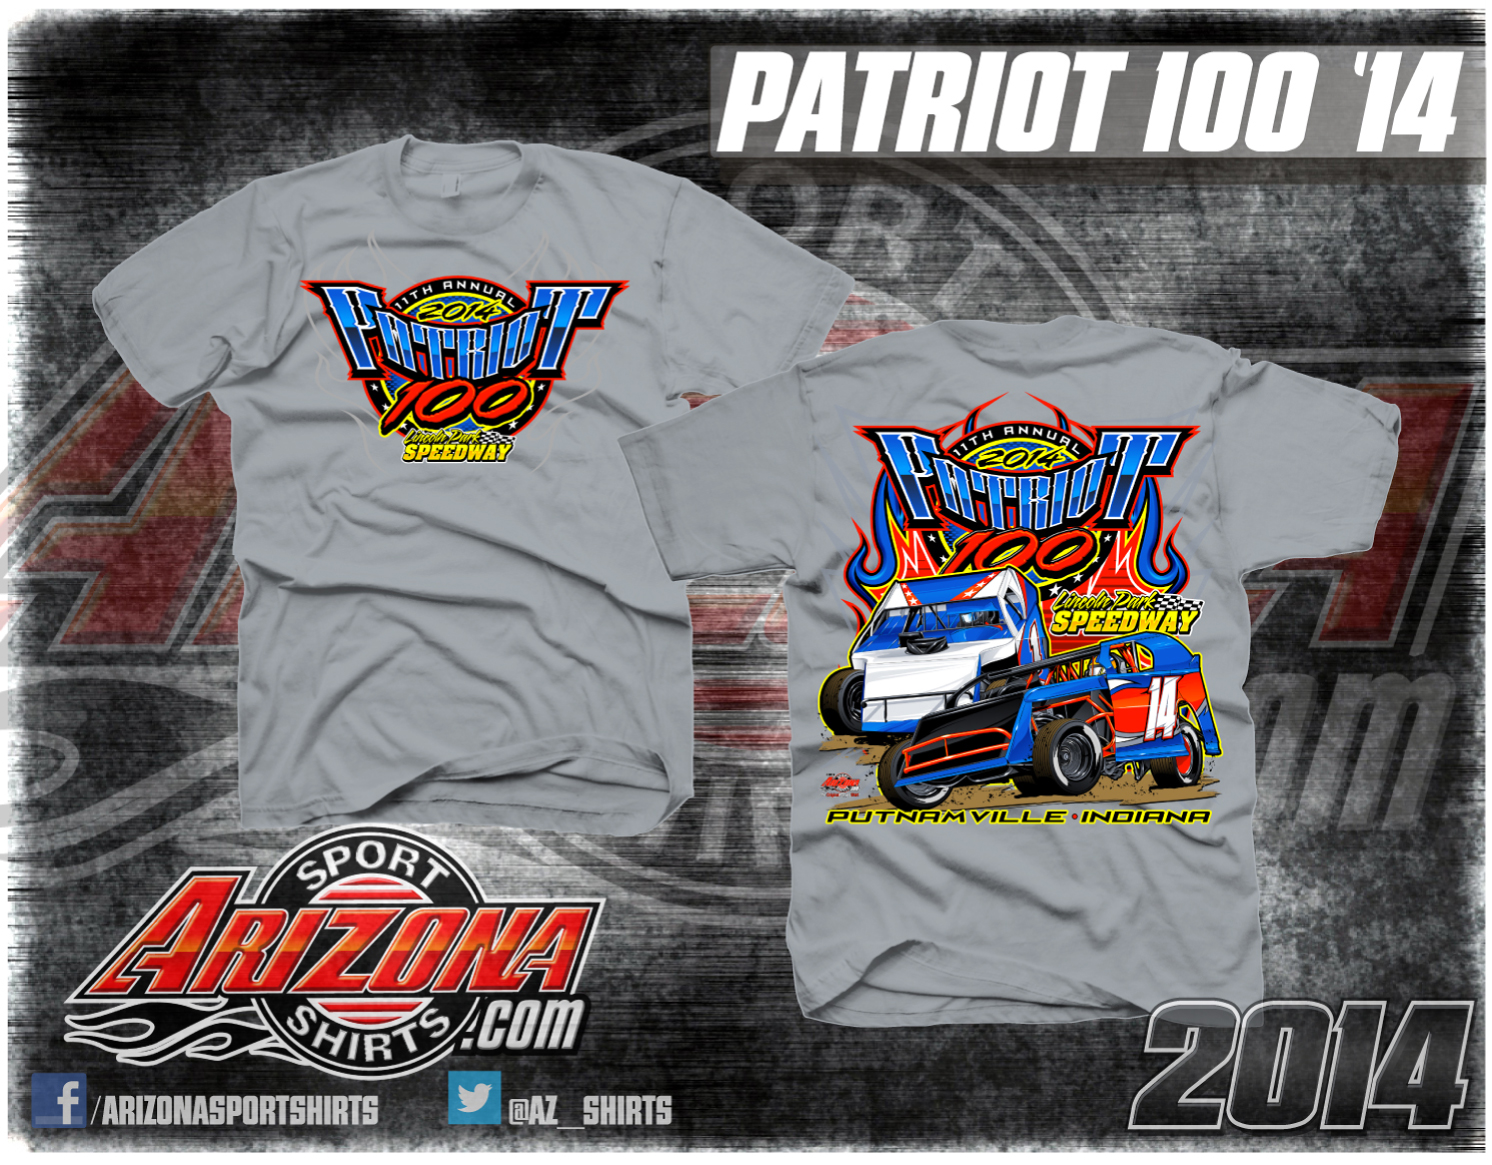 patriot-100-layout-14